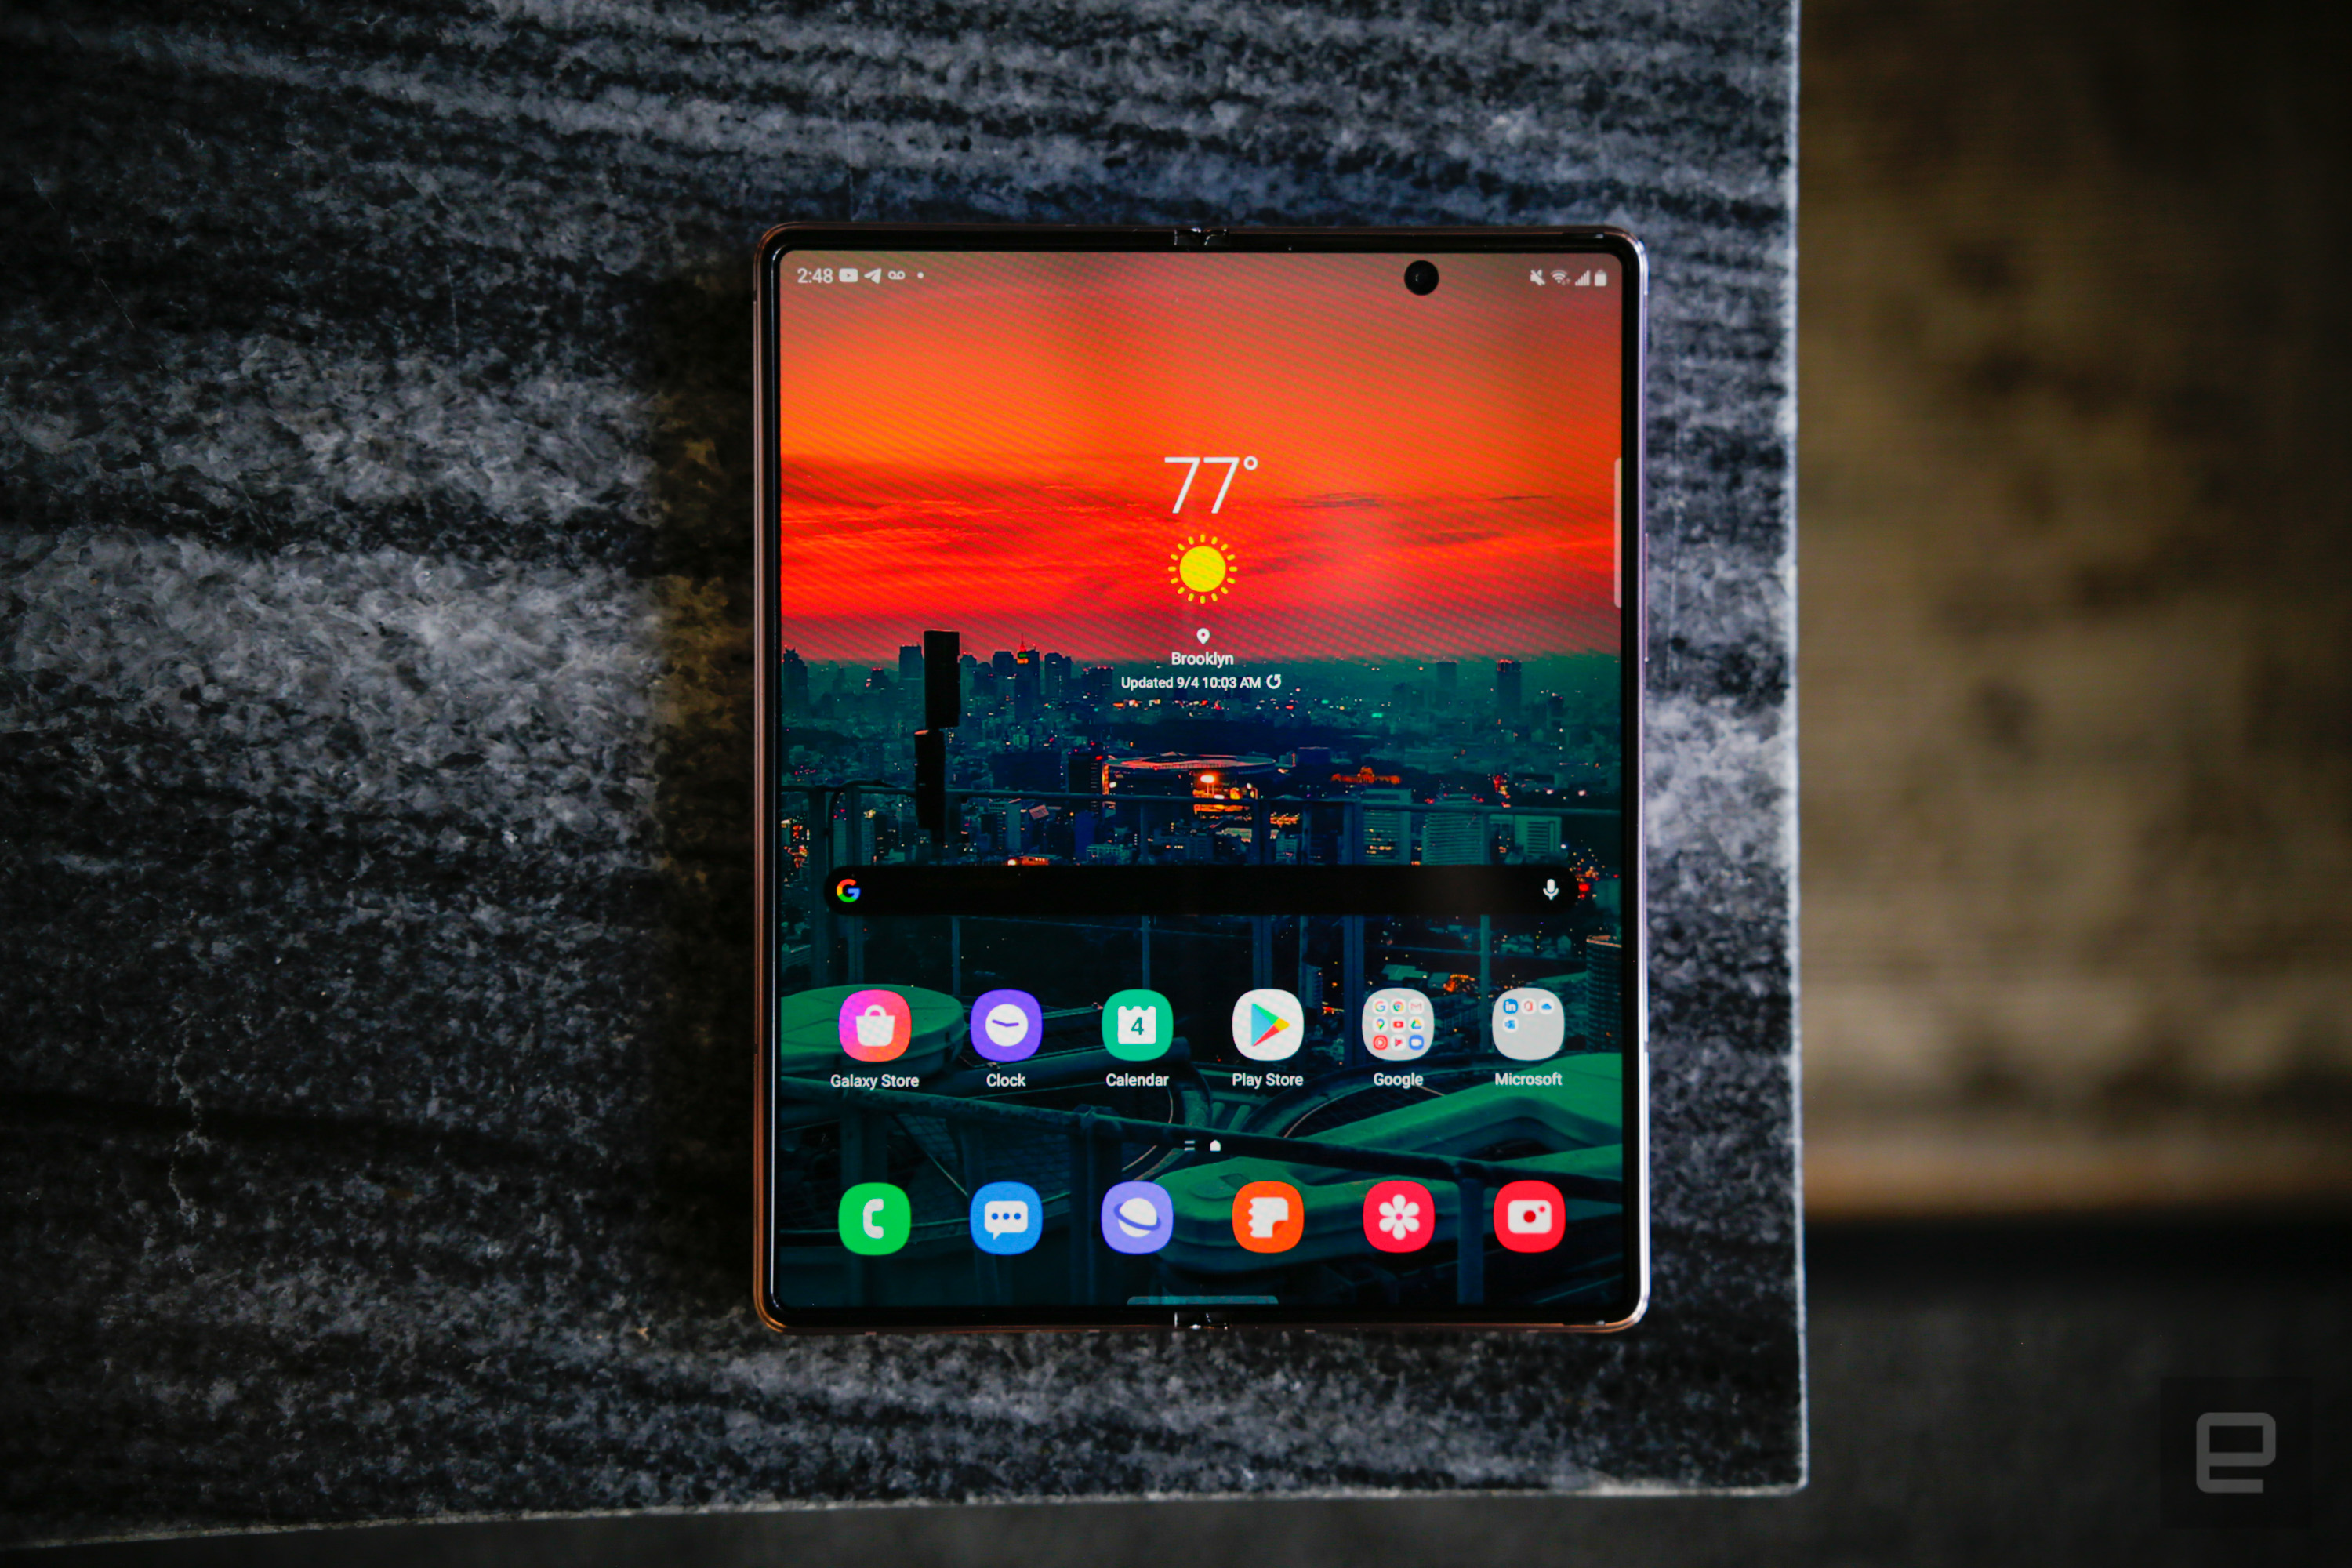 Samsung Galaxy Z Fold2 5G is priced at Rs